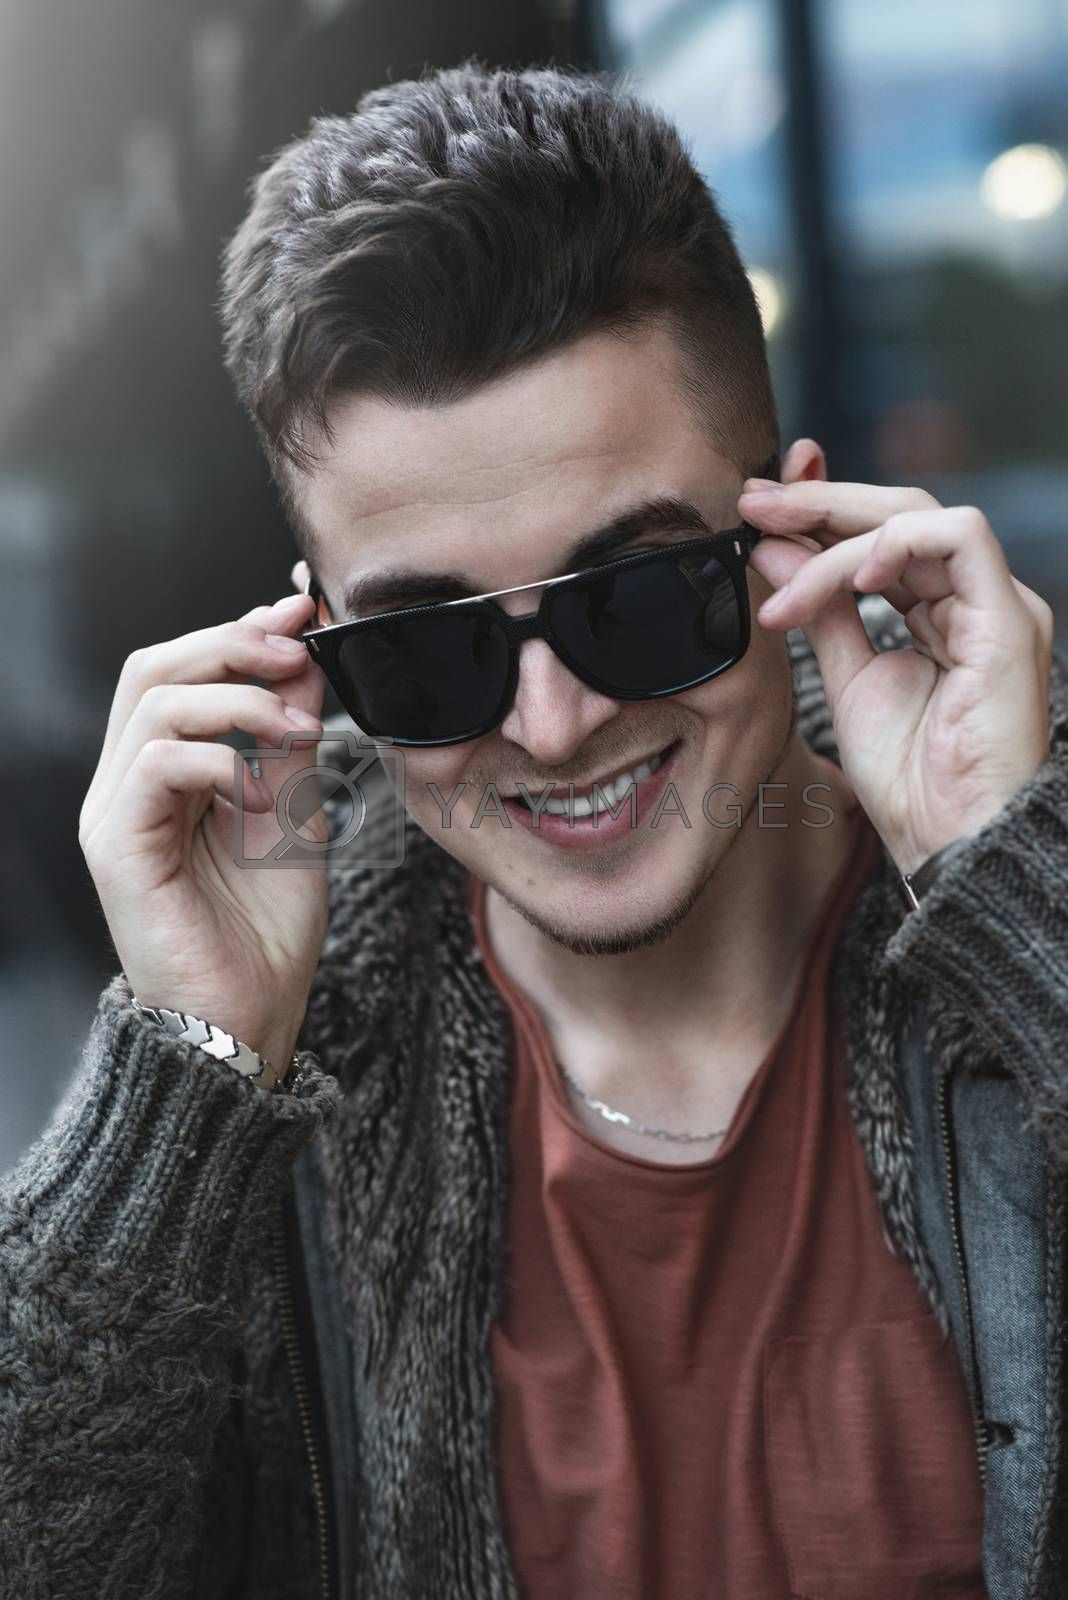 Closeup of cheerful young caucasian man in sunglasses standing and smiling over street background